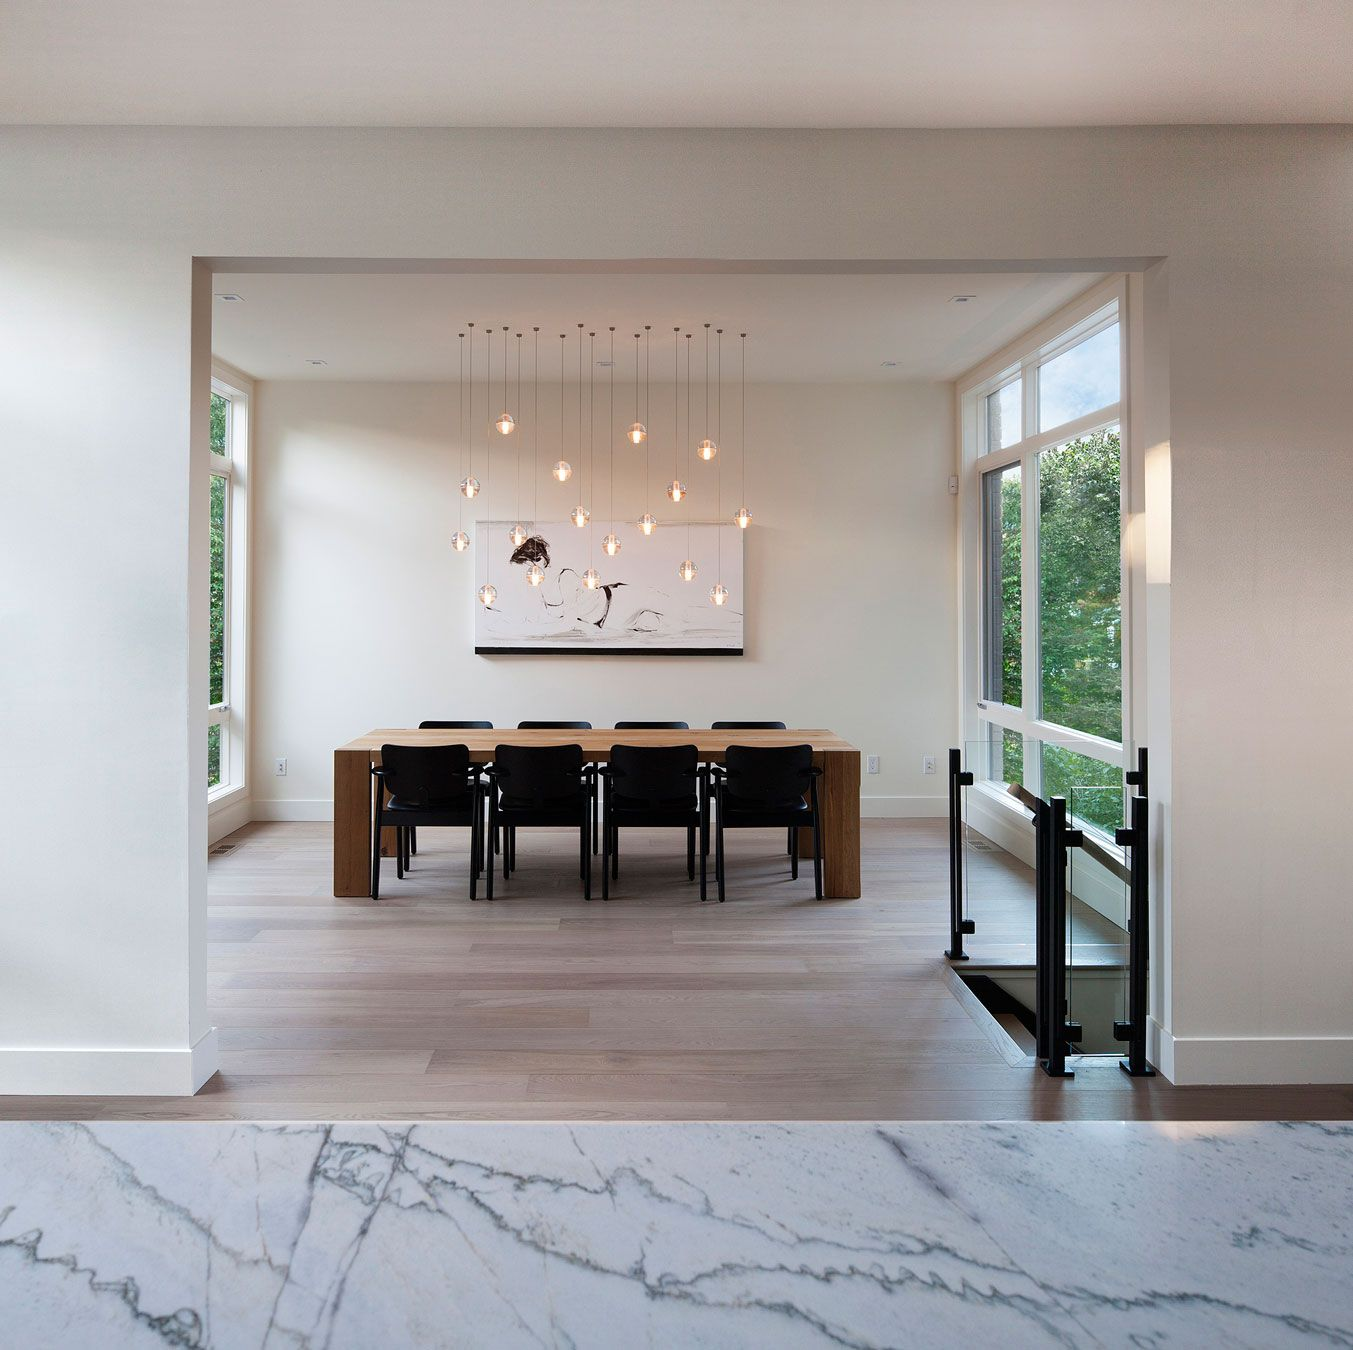 Decoration Excellent Home Design Of Westboro In Ontario By Kariouk Associates Featuring Marble Countertop Parquet Floor Wooden Dining Table Plus